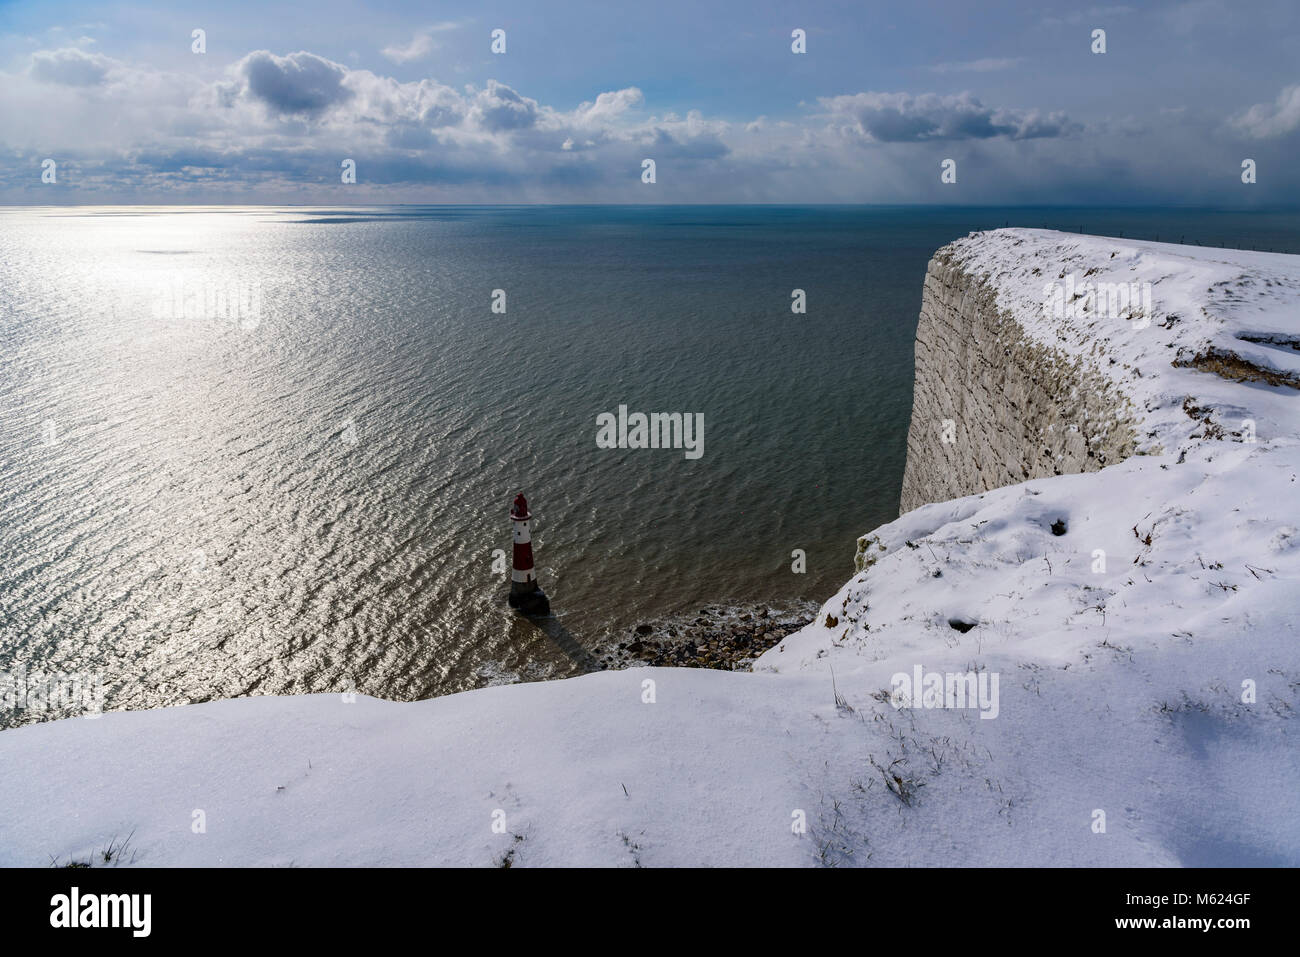 Beachy Head Lighthouse from the top of snowy cliffs - Stock Image